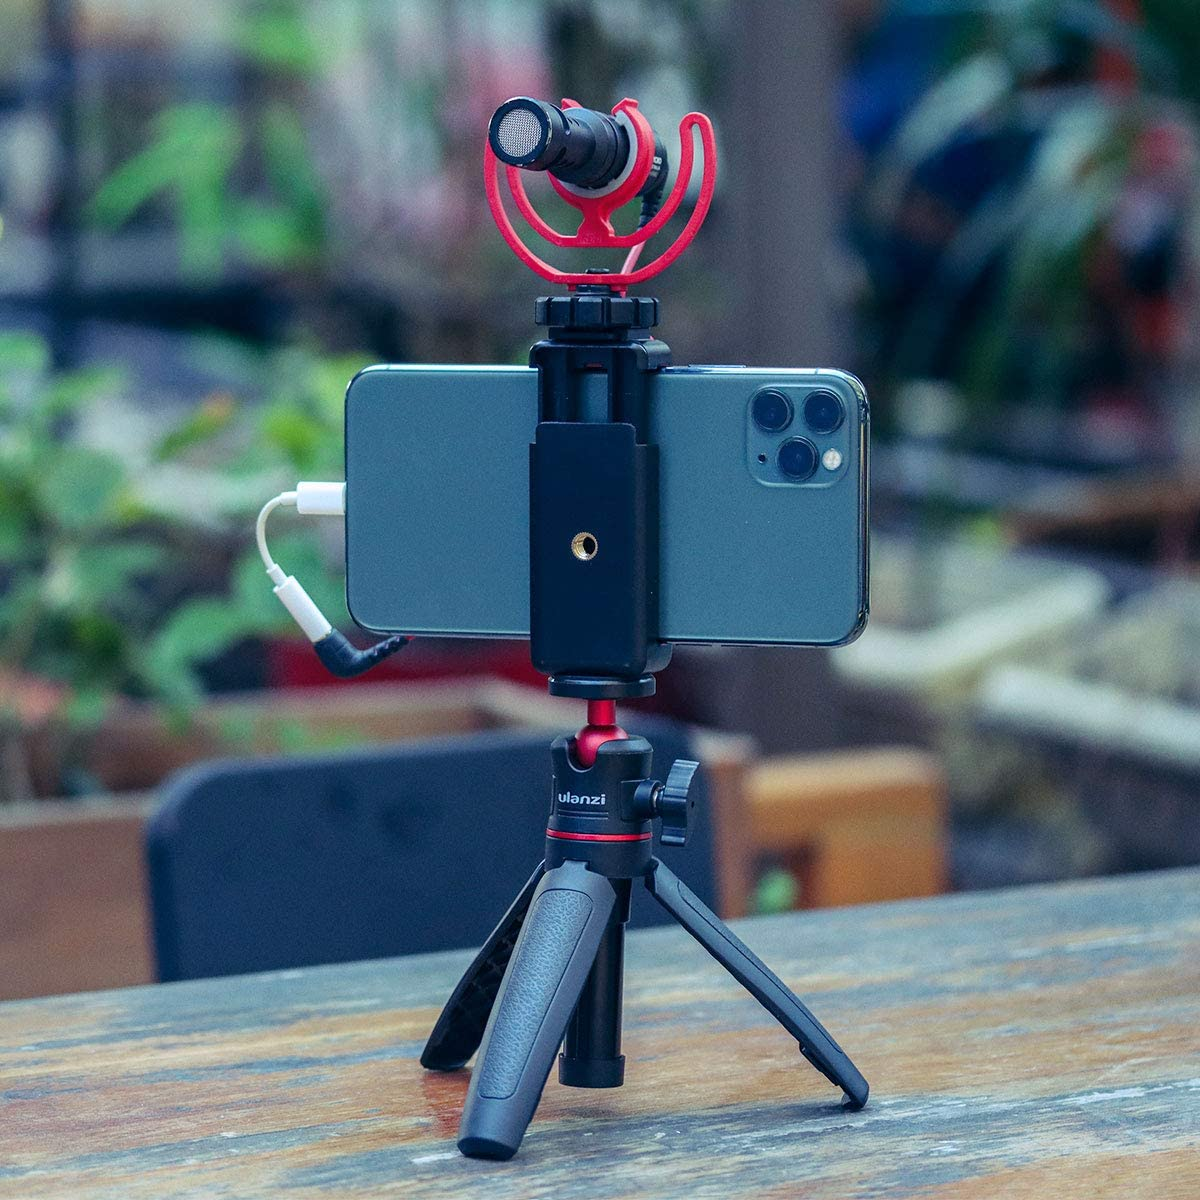 Yifant MT-08 Mini Extendable Handheld Tripod Compatible with iPhone//Samsung//Google Smartphone Clamp for Travel Vlogging Travel 1//4 Tripod Head